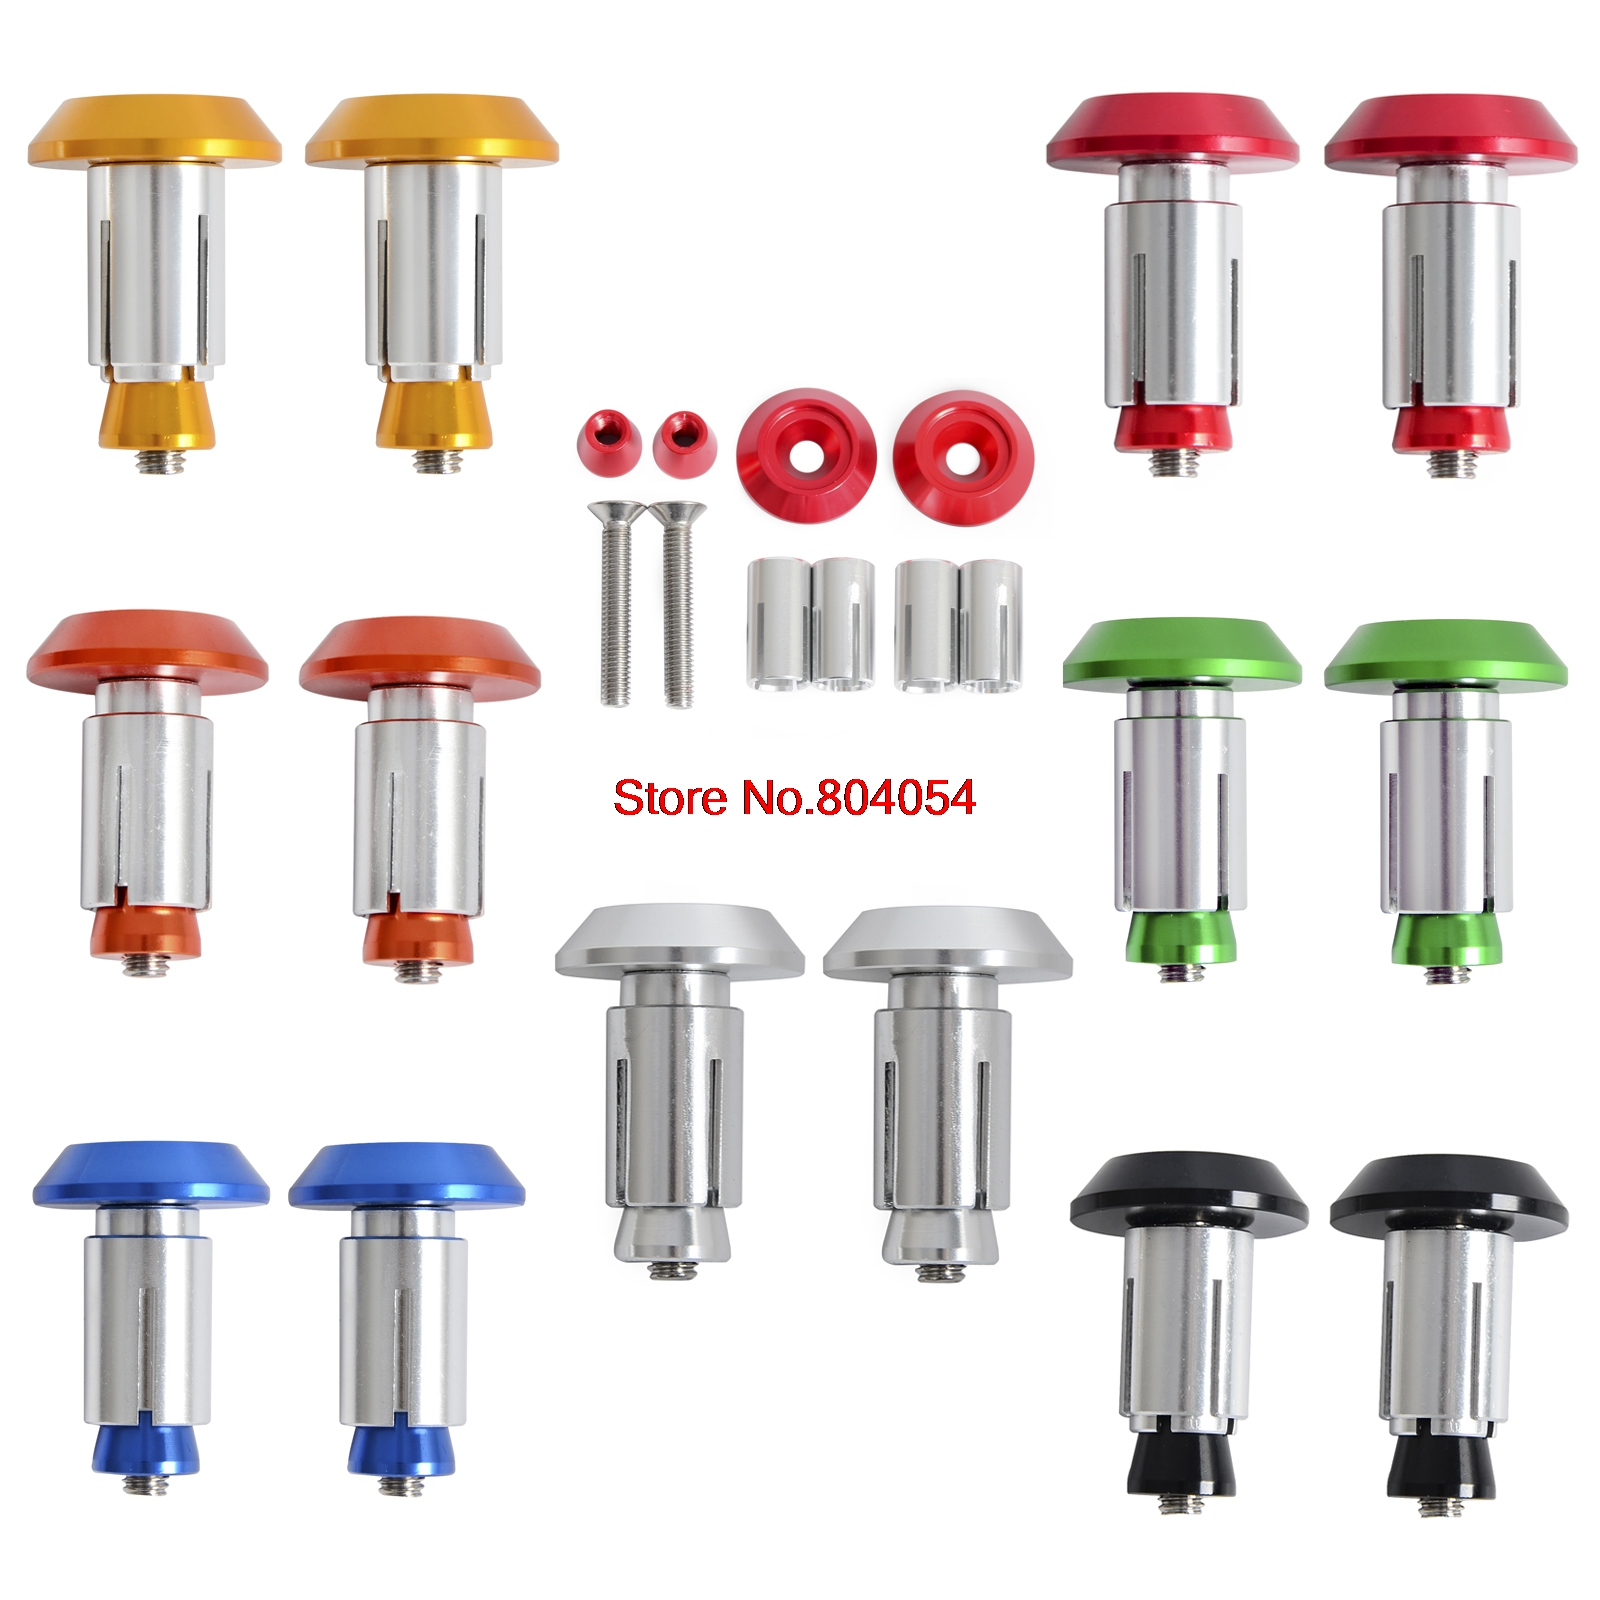 CNC Billet Handlebar Cap Plugs for Yamaha YZ80 YZ85 YZ125 YZ250 2001-2016 YZ250F YZ426F YZ450F 2001-2006 EW billet rear hub carriers for losi 5ive t